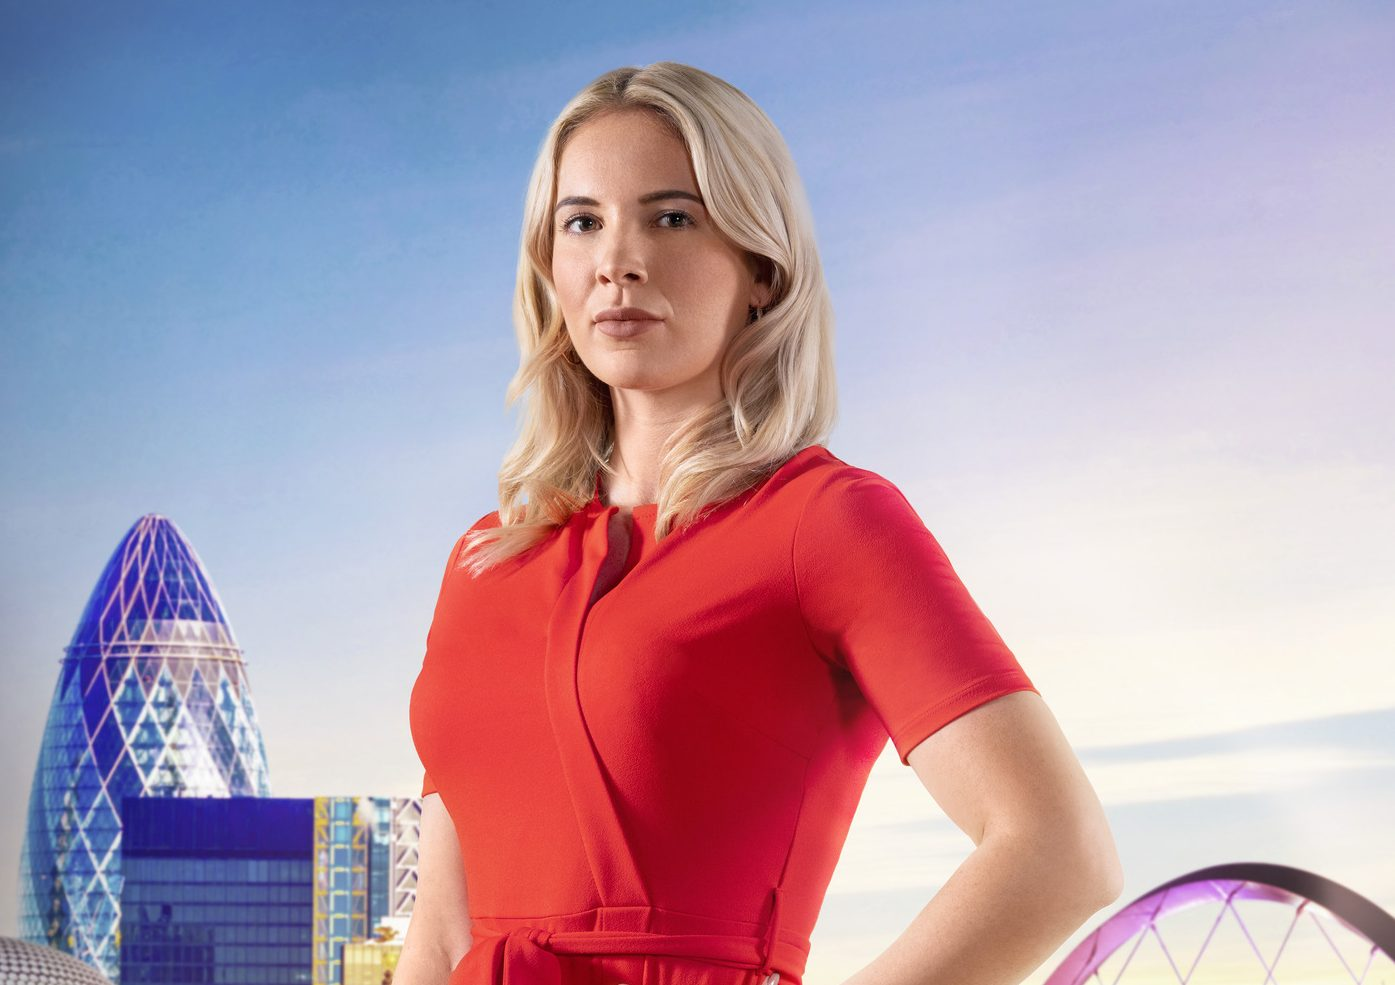 How old is The Apprentice's Camilla Ainsworth and what's her nut milk company called?